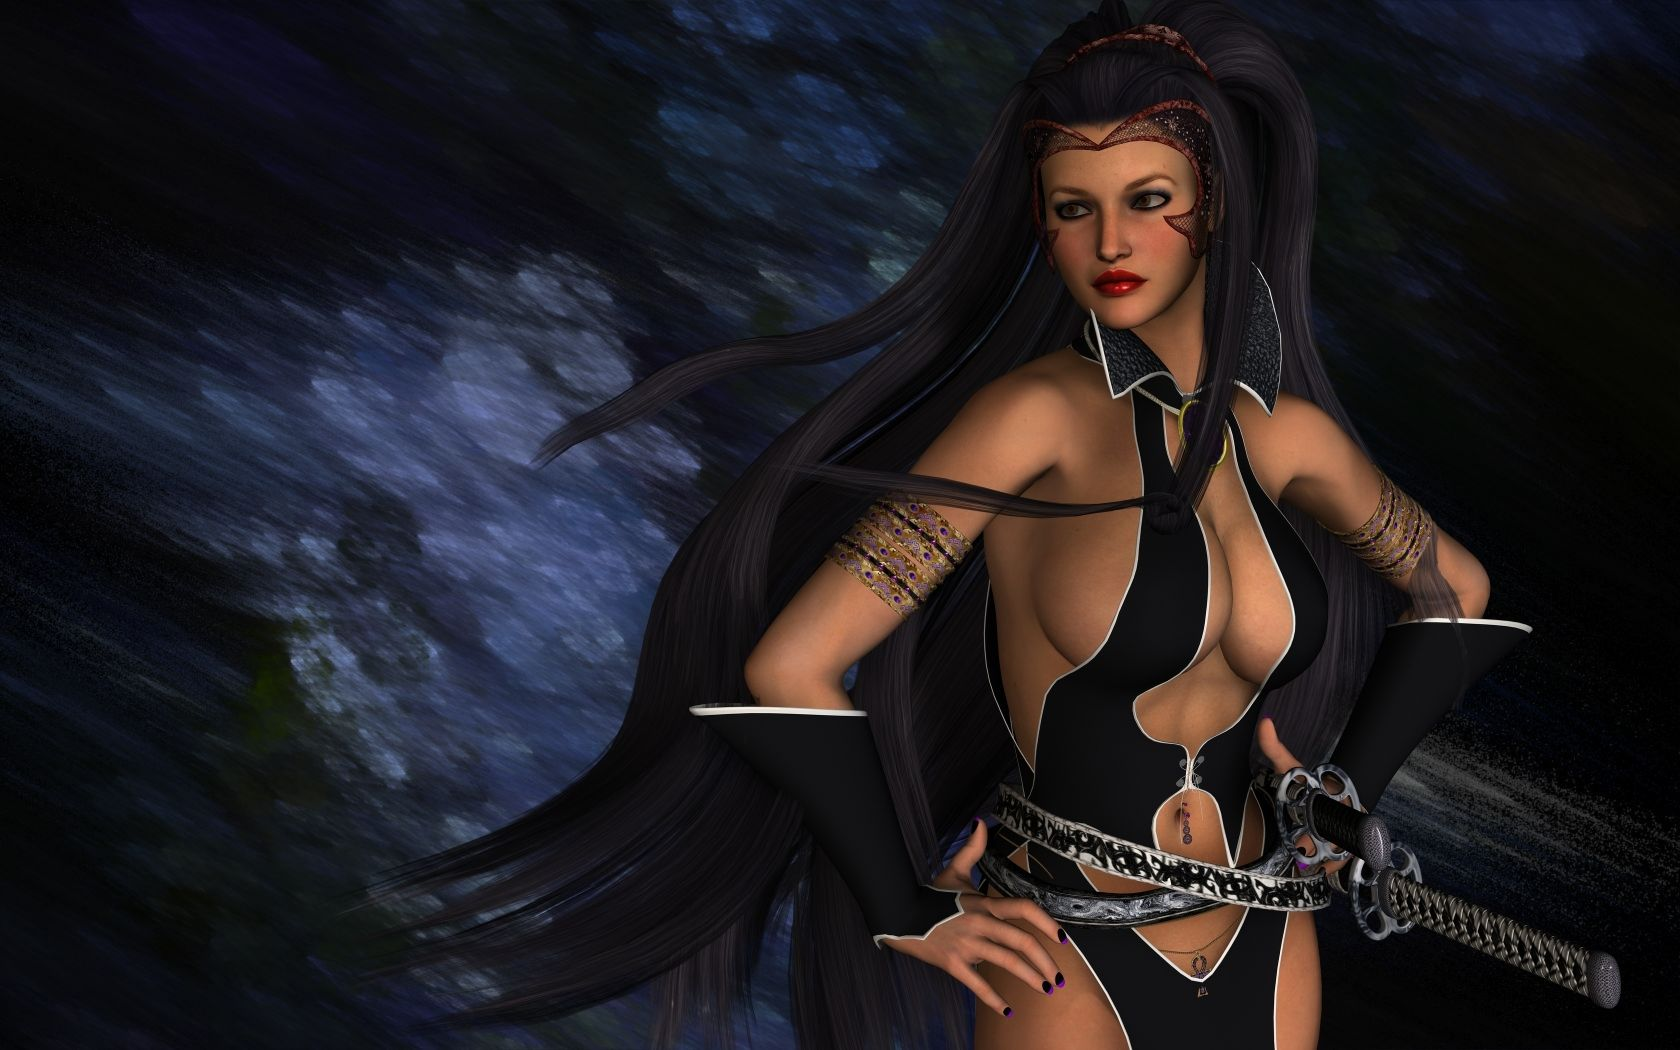 Hot!! erotic woman warrior fantasy art